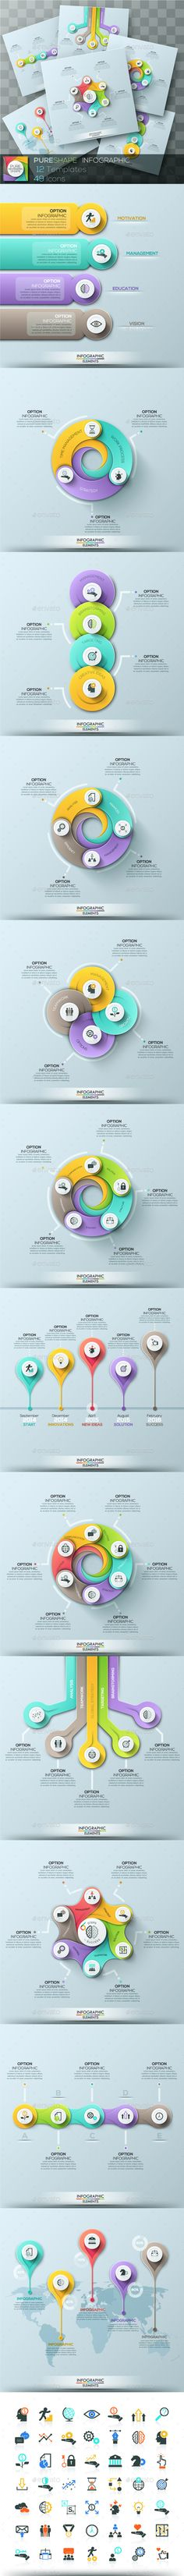 Pure Shape Infographic. Set 4 — Photoshop PSD #layout #concept • Available here → https://graphicriver.net/item/pure-shape-infographic-set-4/15908625?ref=pxcr